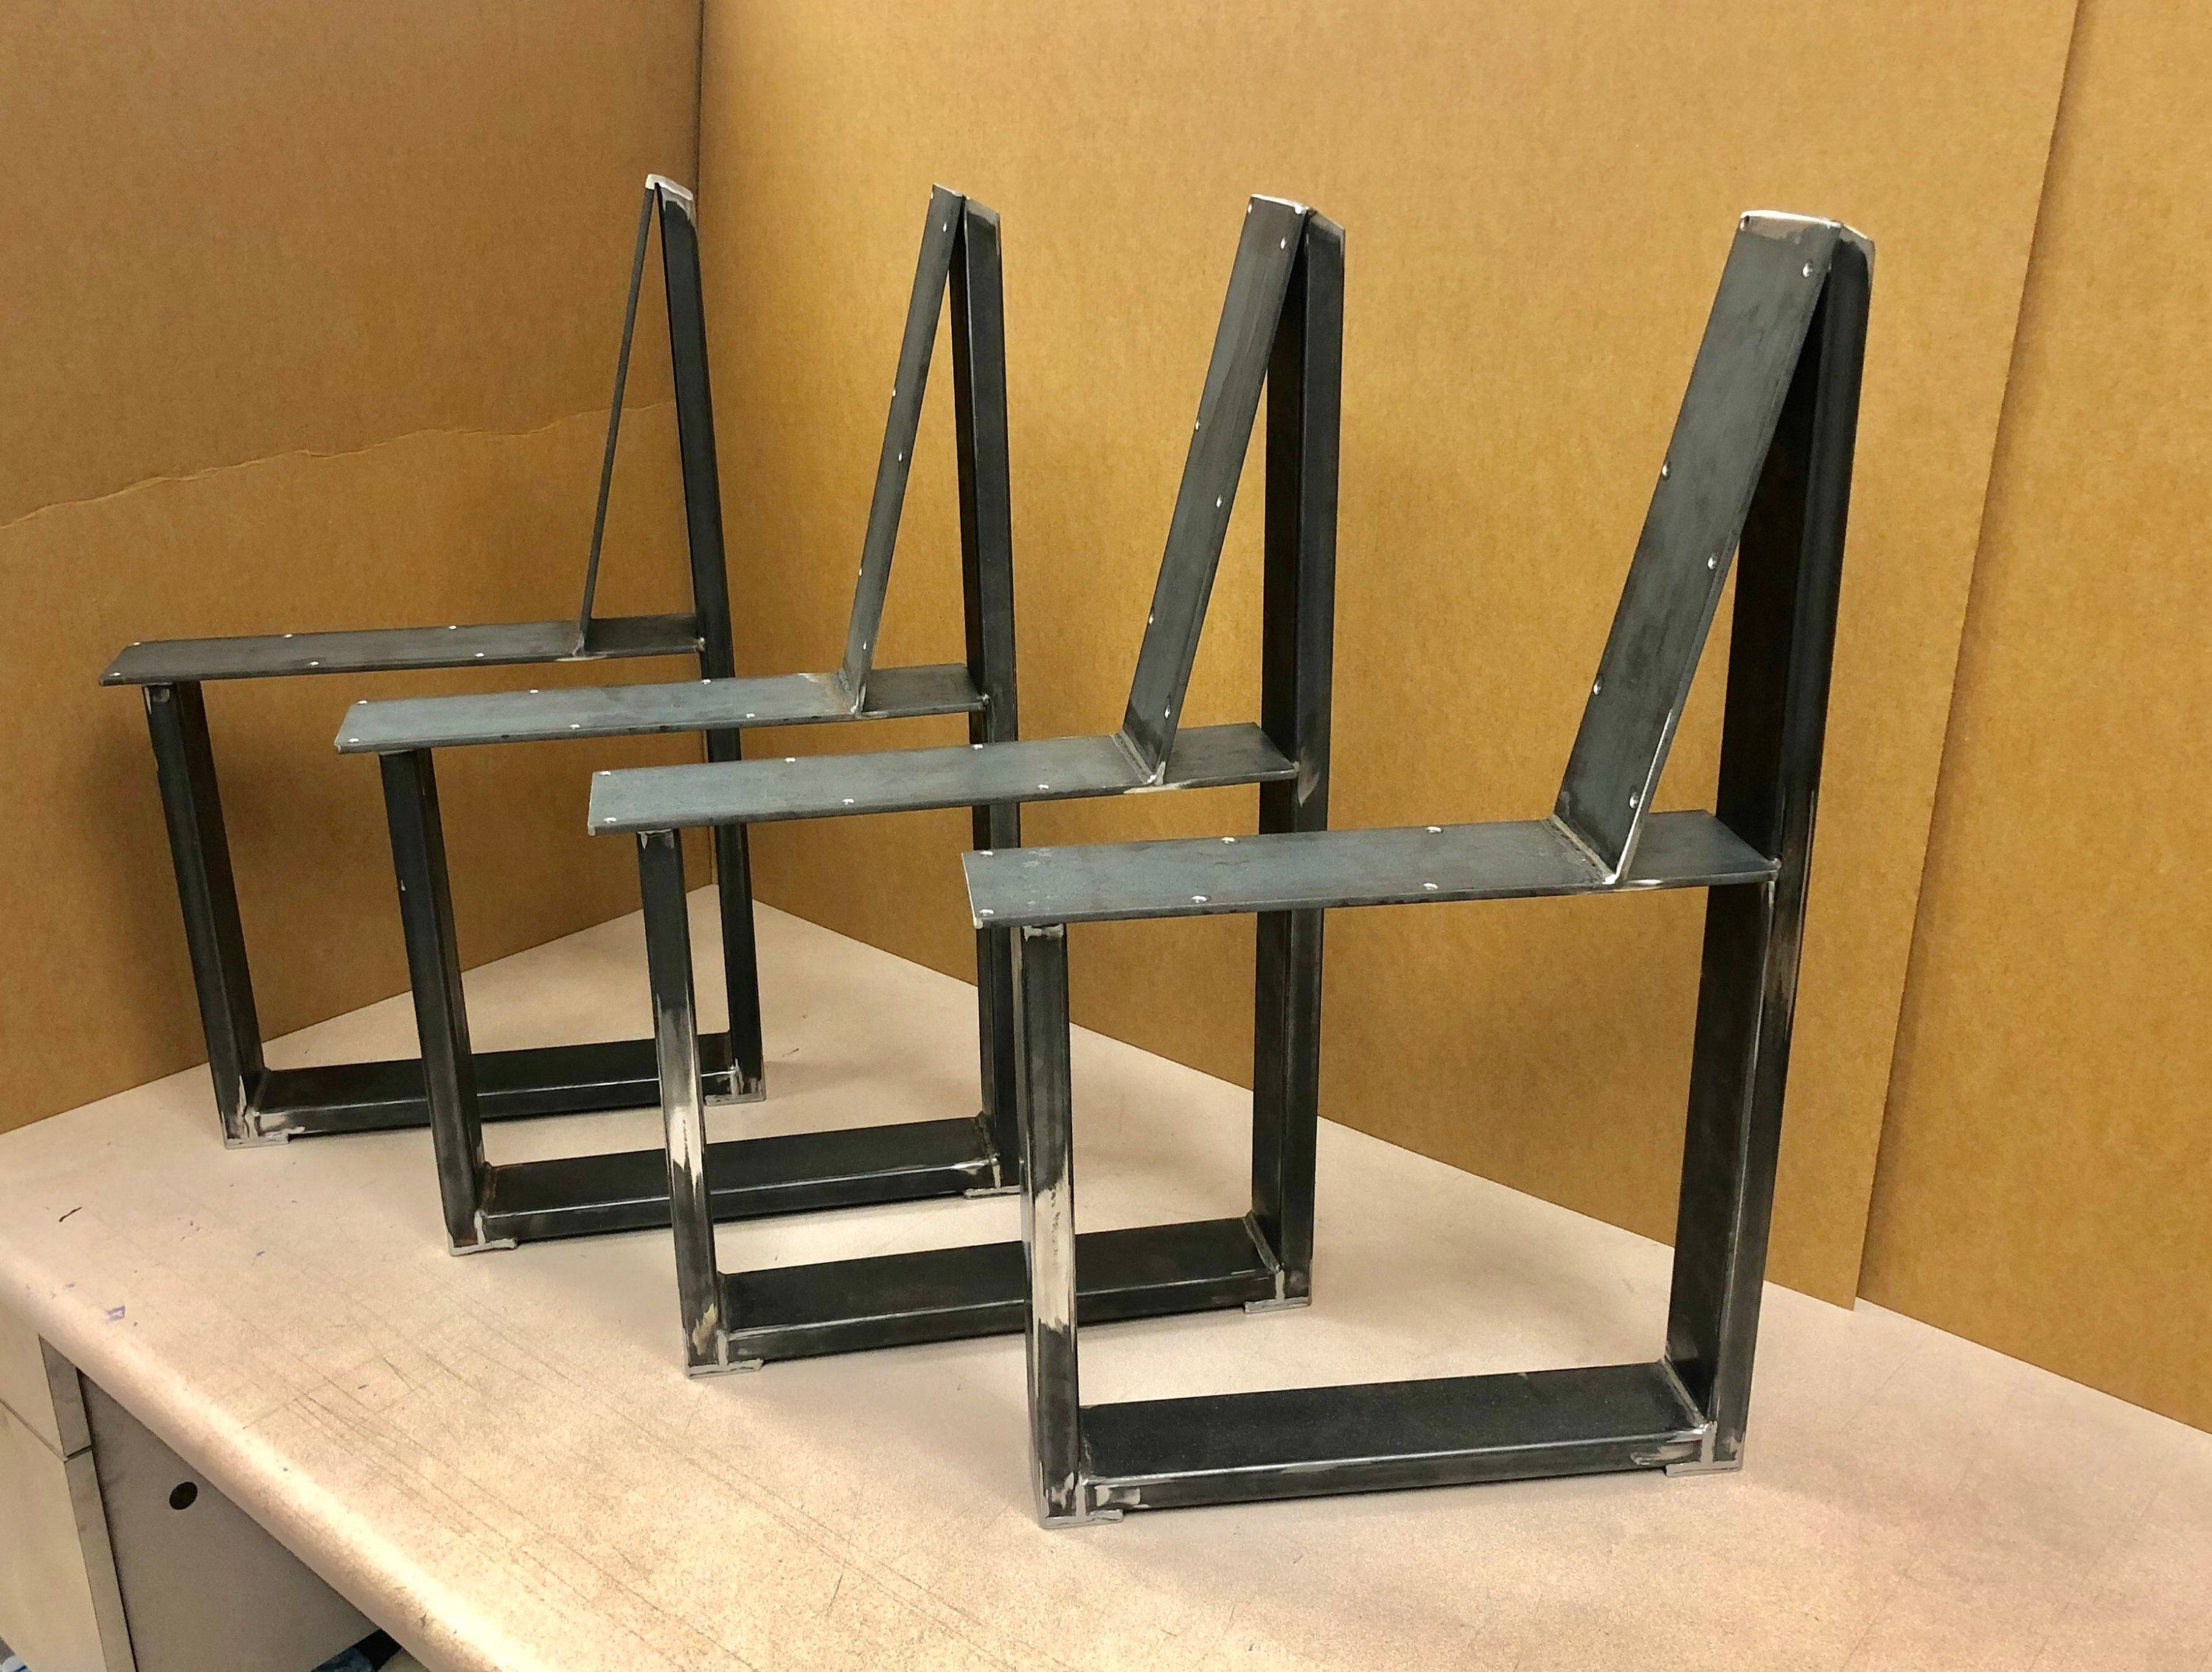 U Shaped Bench Steel Legs With Back Rest Set Of 4 Steel Bench